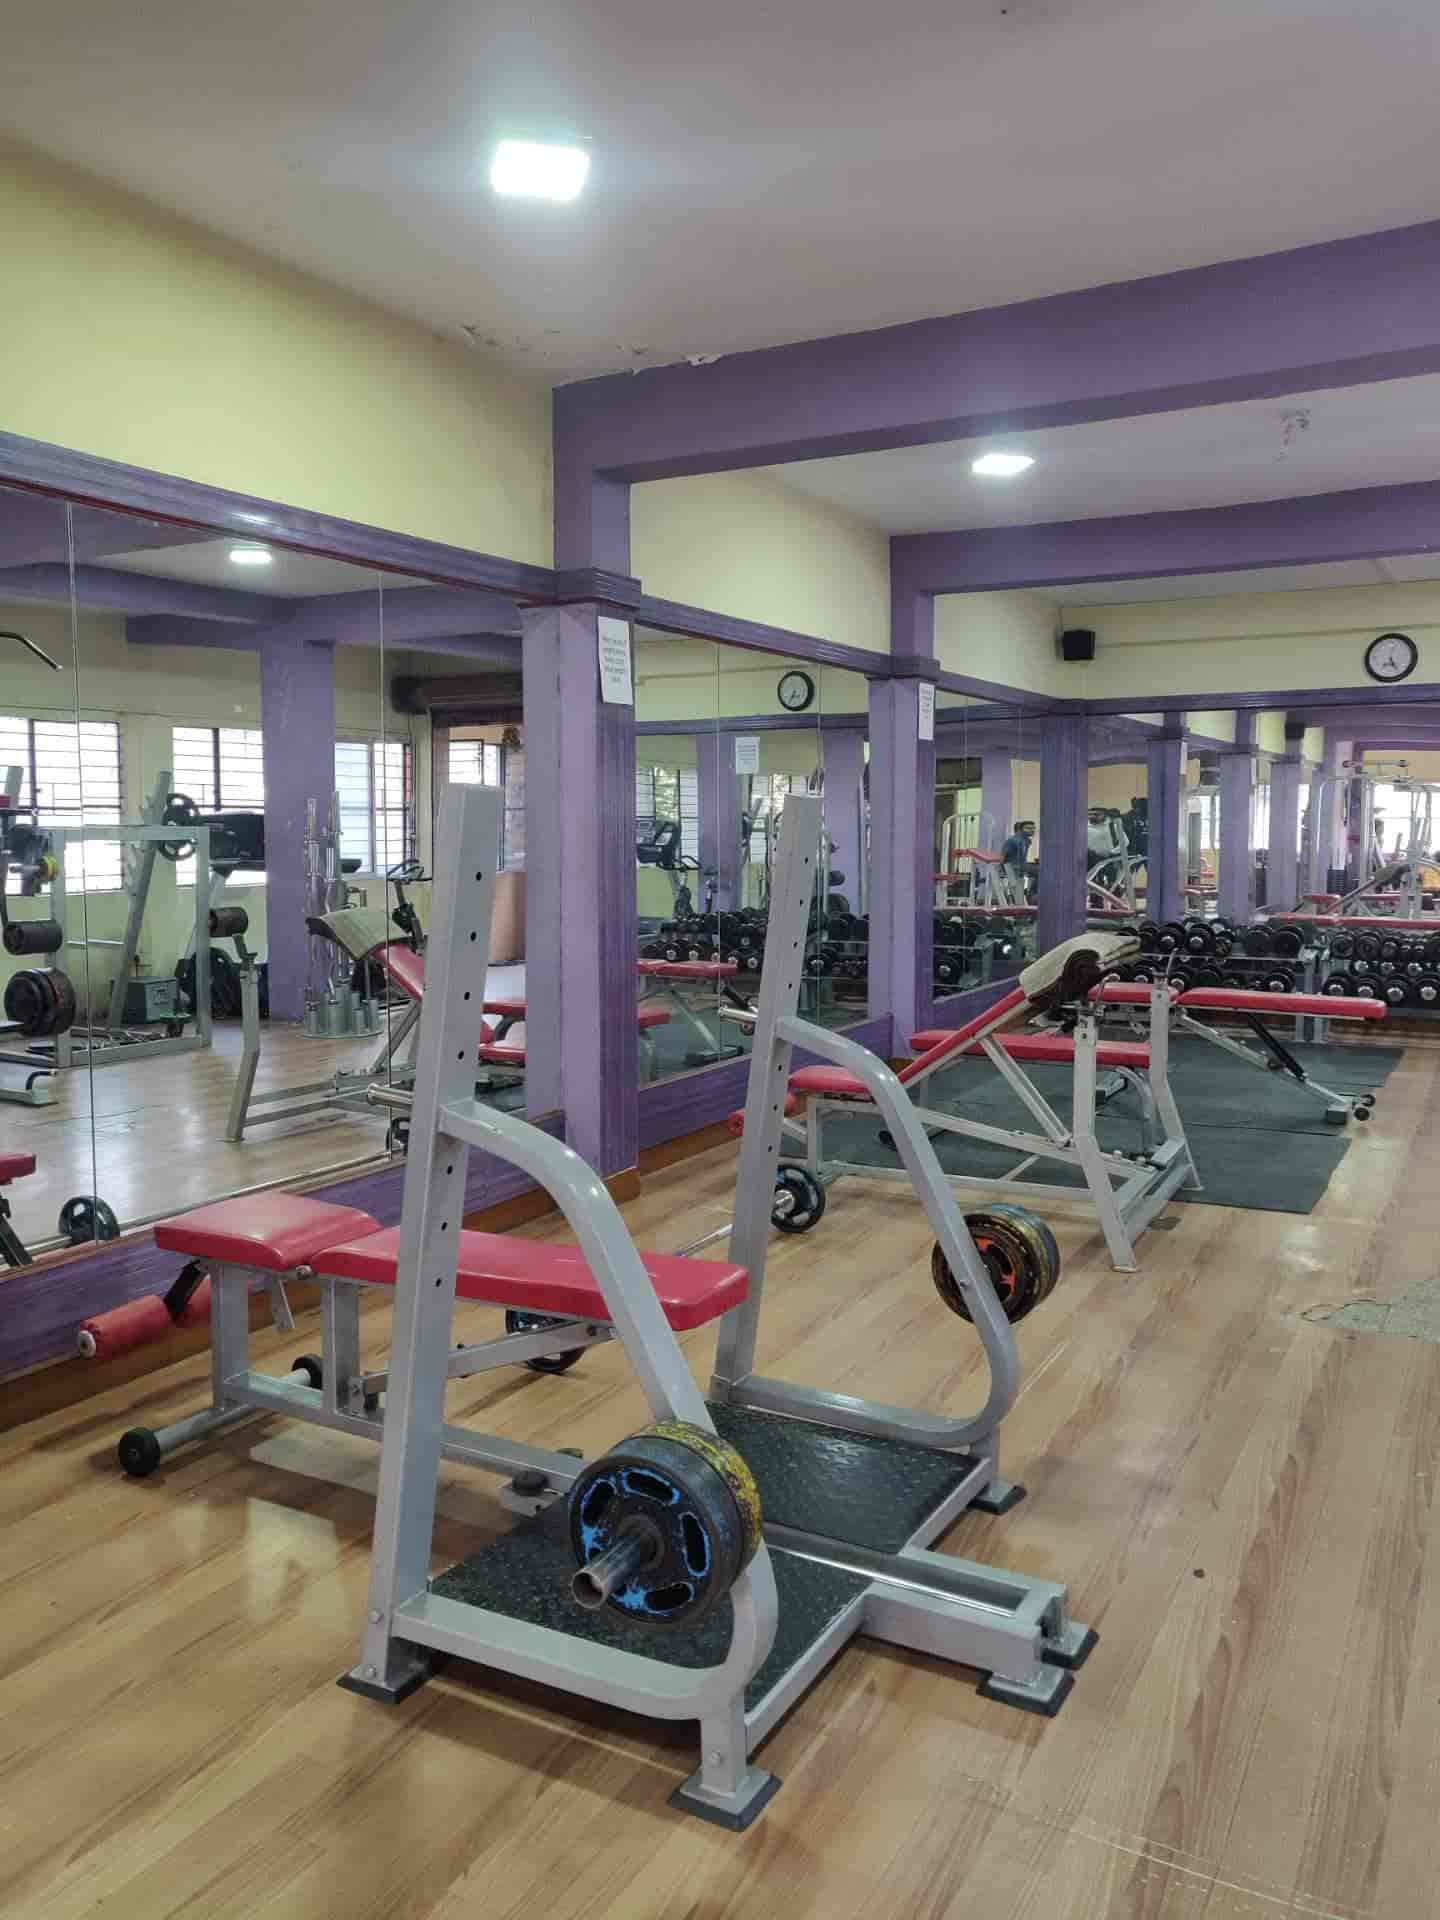 Power Strength Fitness& Gym, Vijayanagar - Gyms in Bangalore